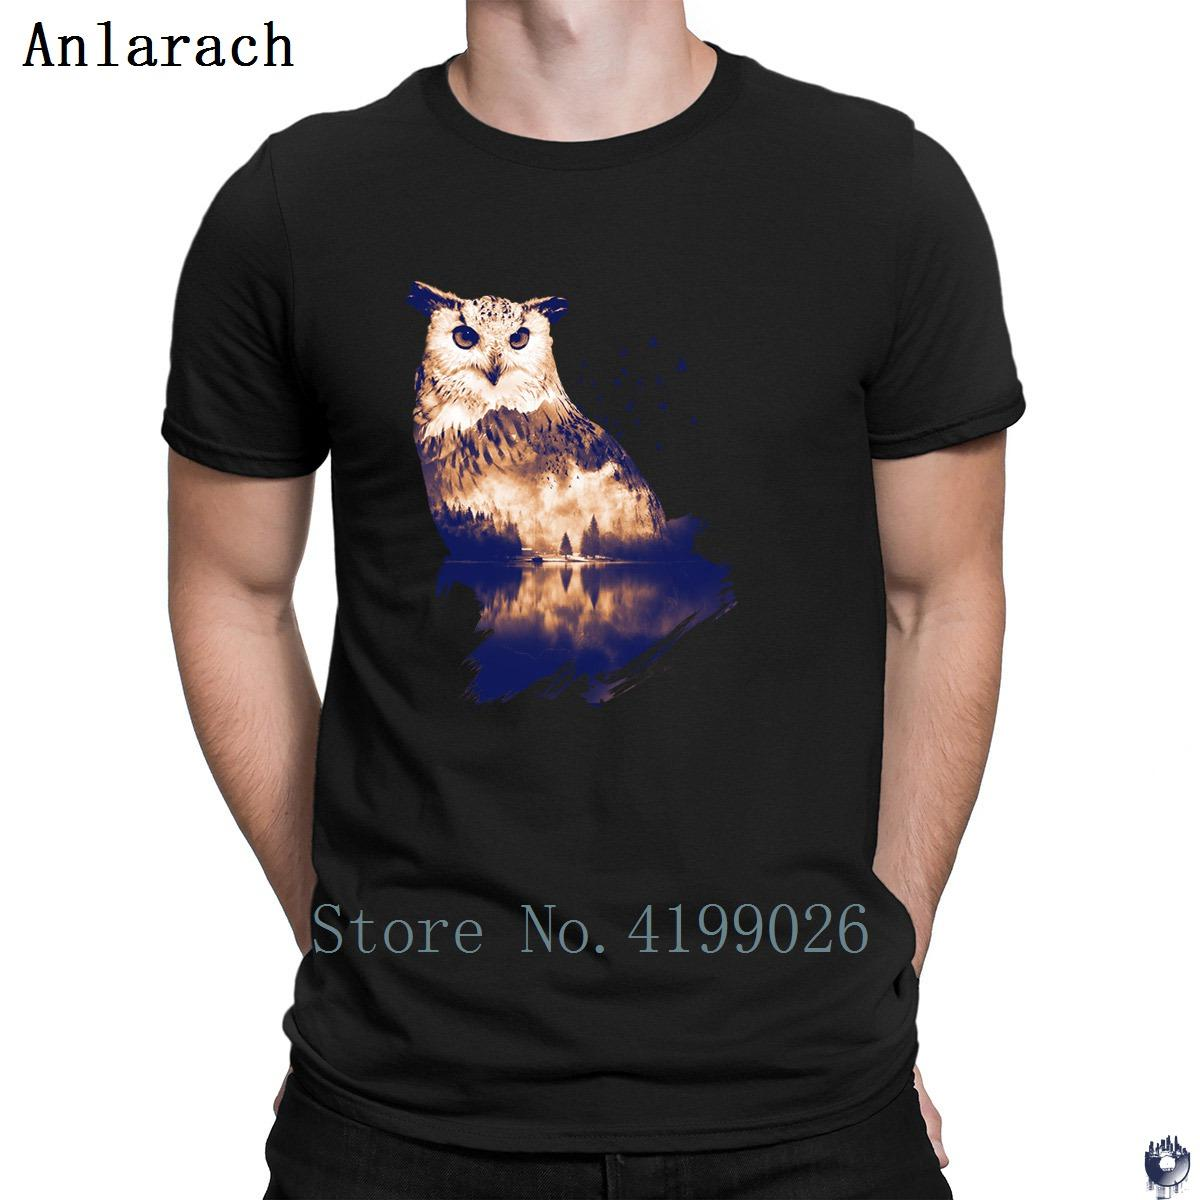 57dc33c2 Forest Owl T Shirt Round Collar Unique Design Summer Top Men'S Tshirt  Hilarious Summer Style Streetwear New Style Super Cool T Shirts And T Shirts  From ...